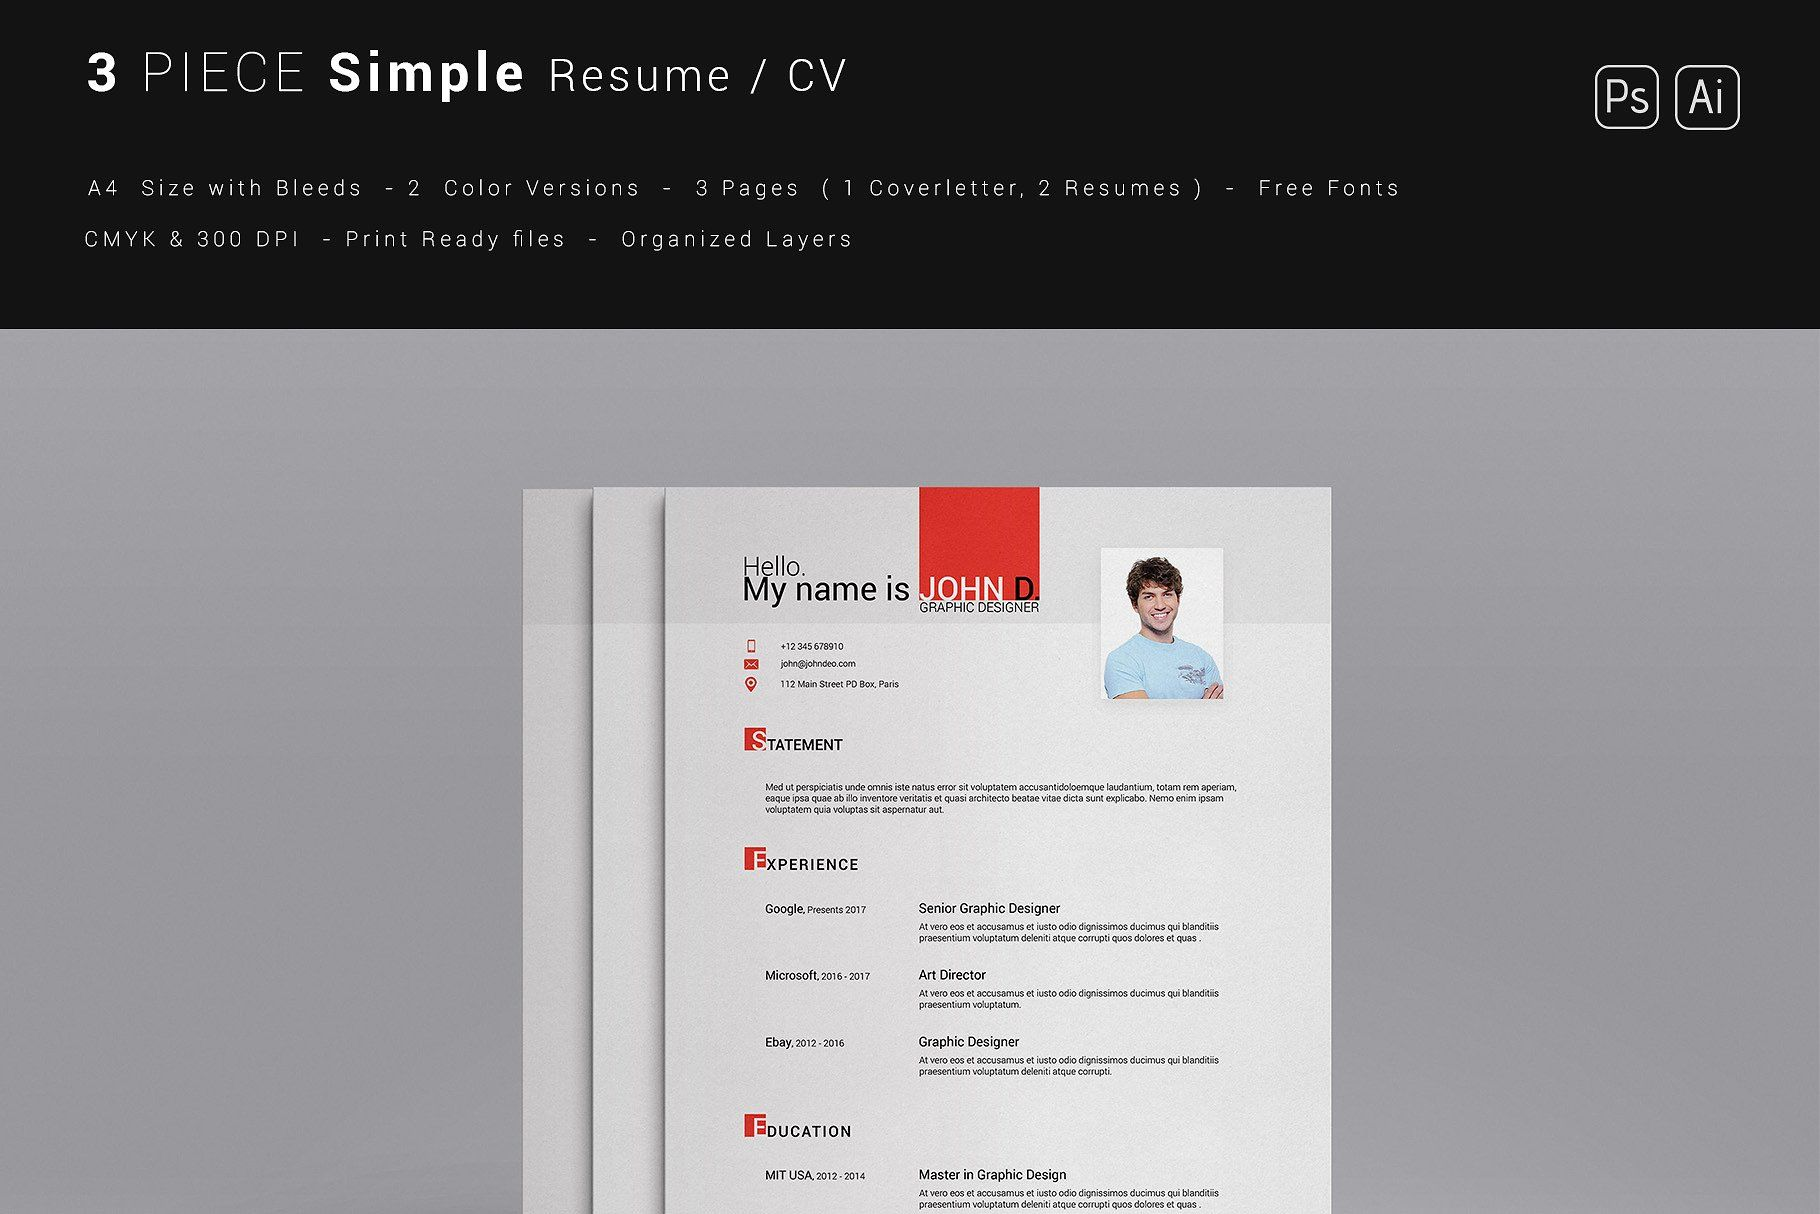 3 Piece Simple Resume by CreativeCrunk on creativemarket